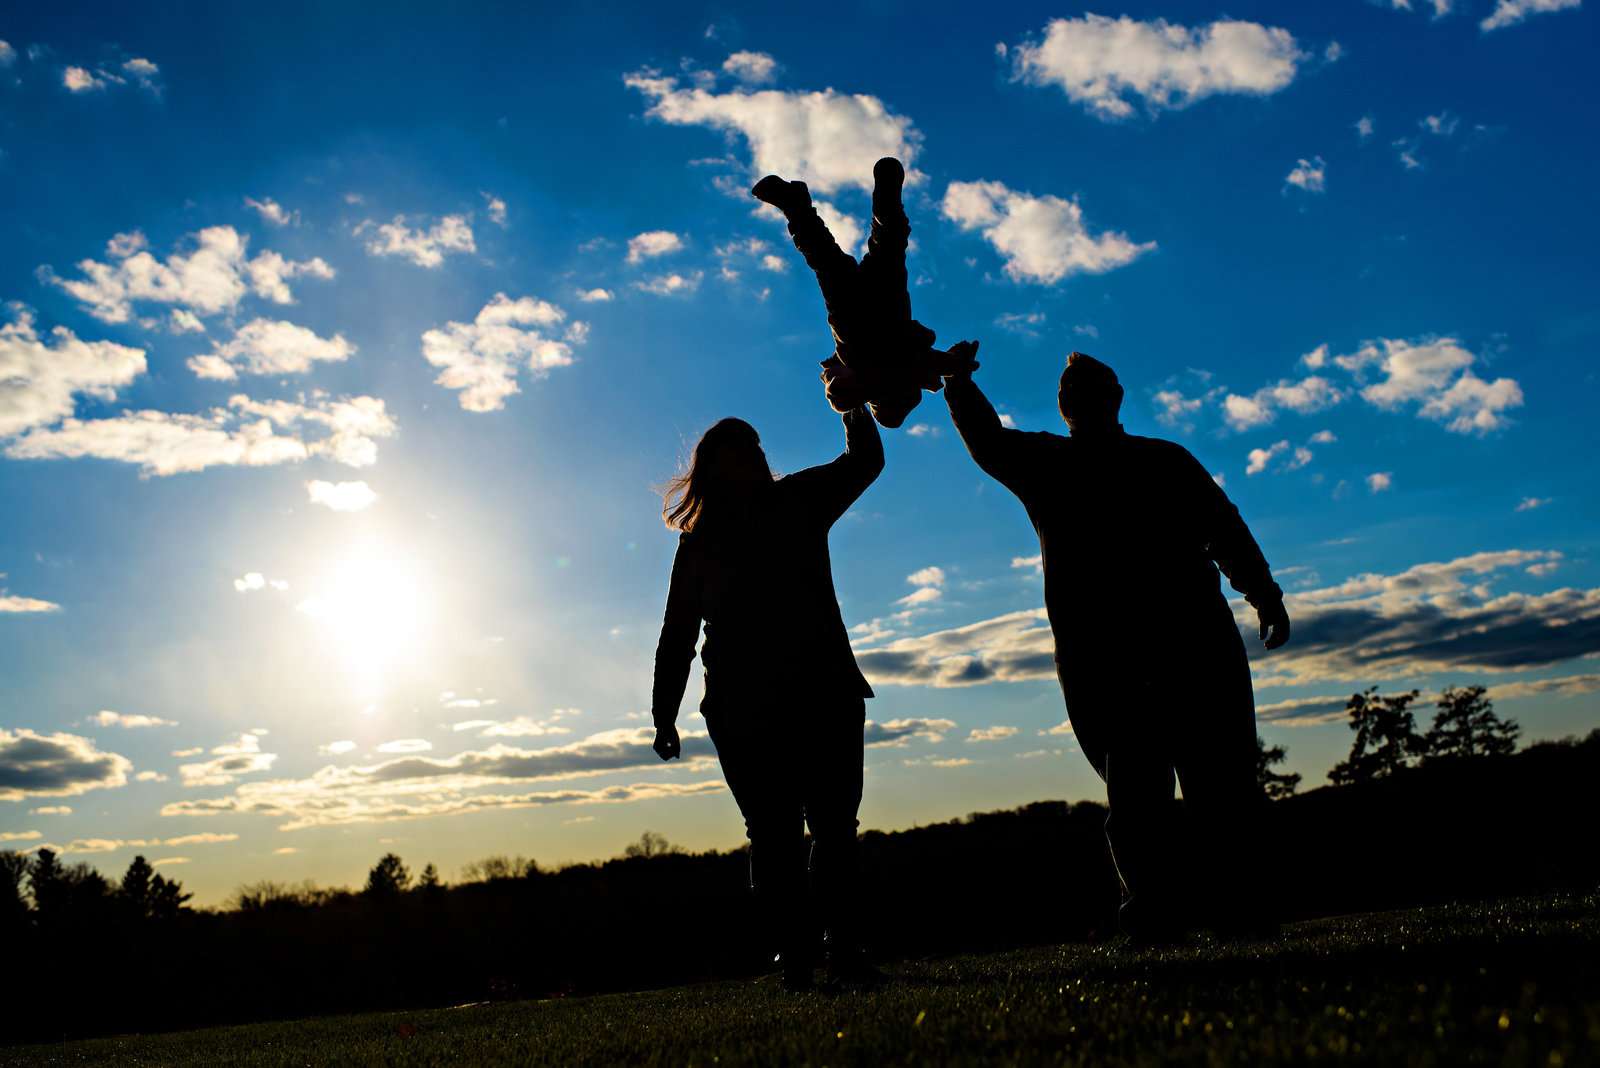 A silhouette of a family swinging their baby up in the air.